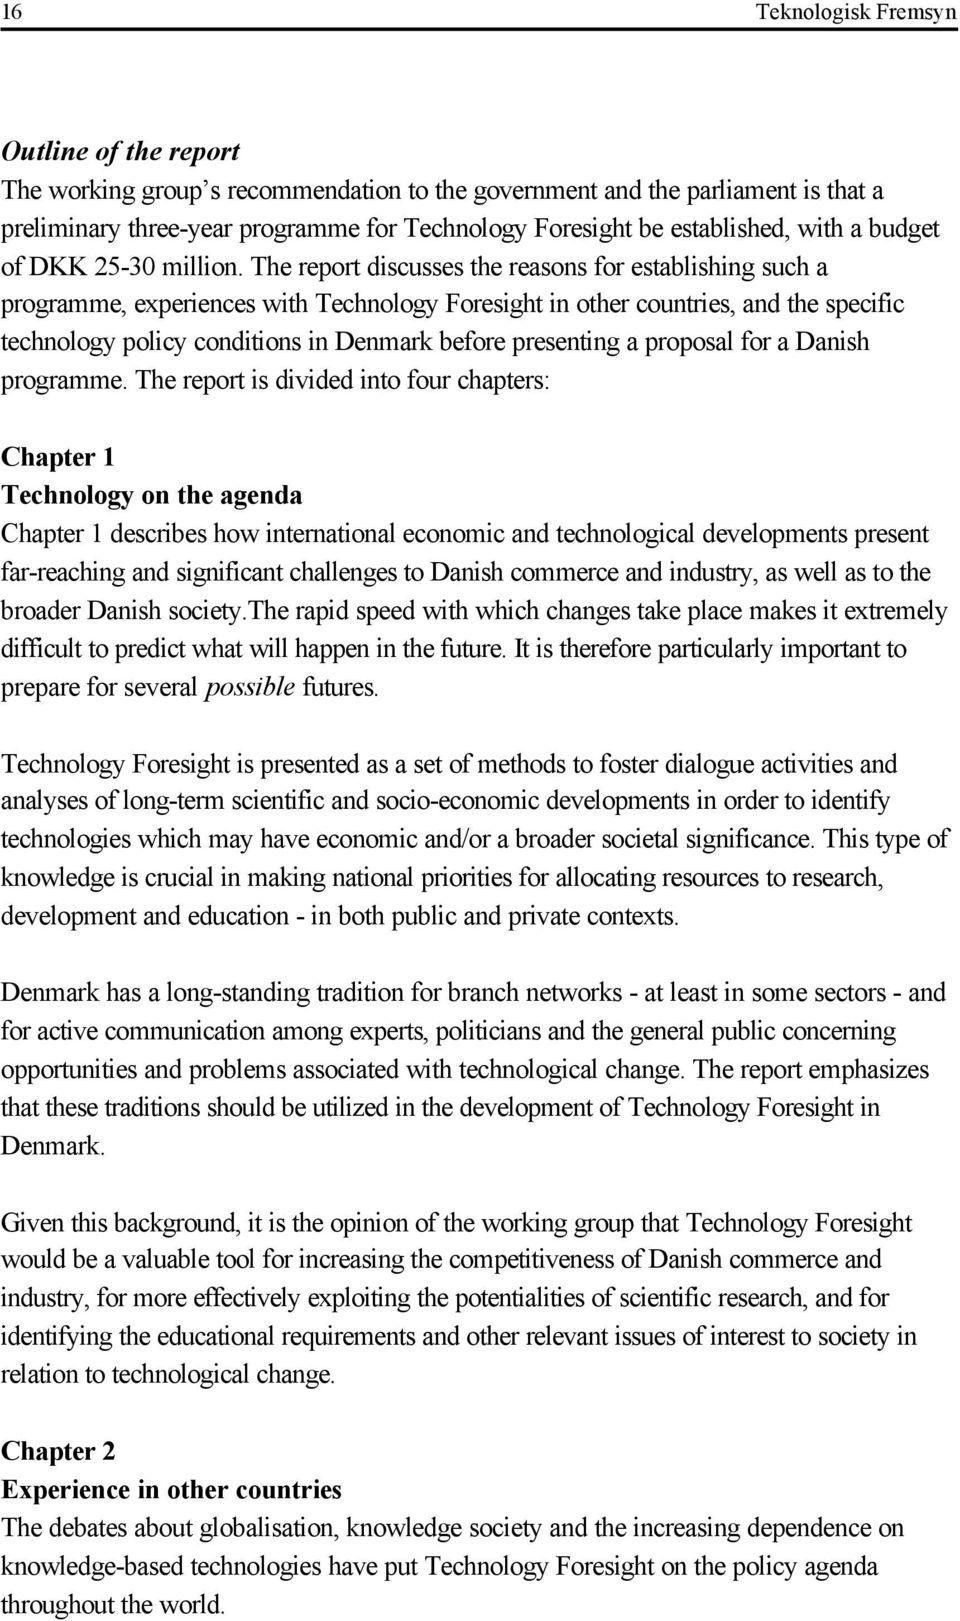 The report discusses the reasons for establishing such a programme, experiences with Technology Foresight in other countries, and the specific technology policy conditions in Denmark before